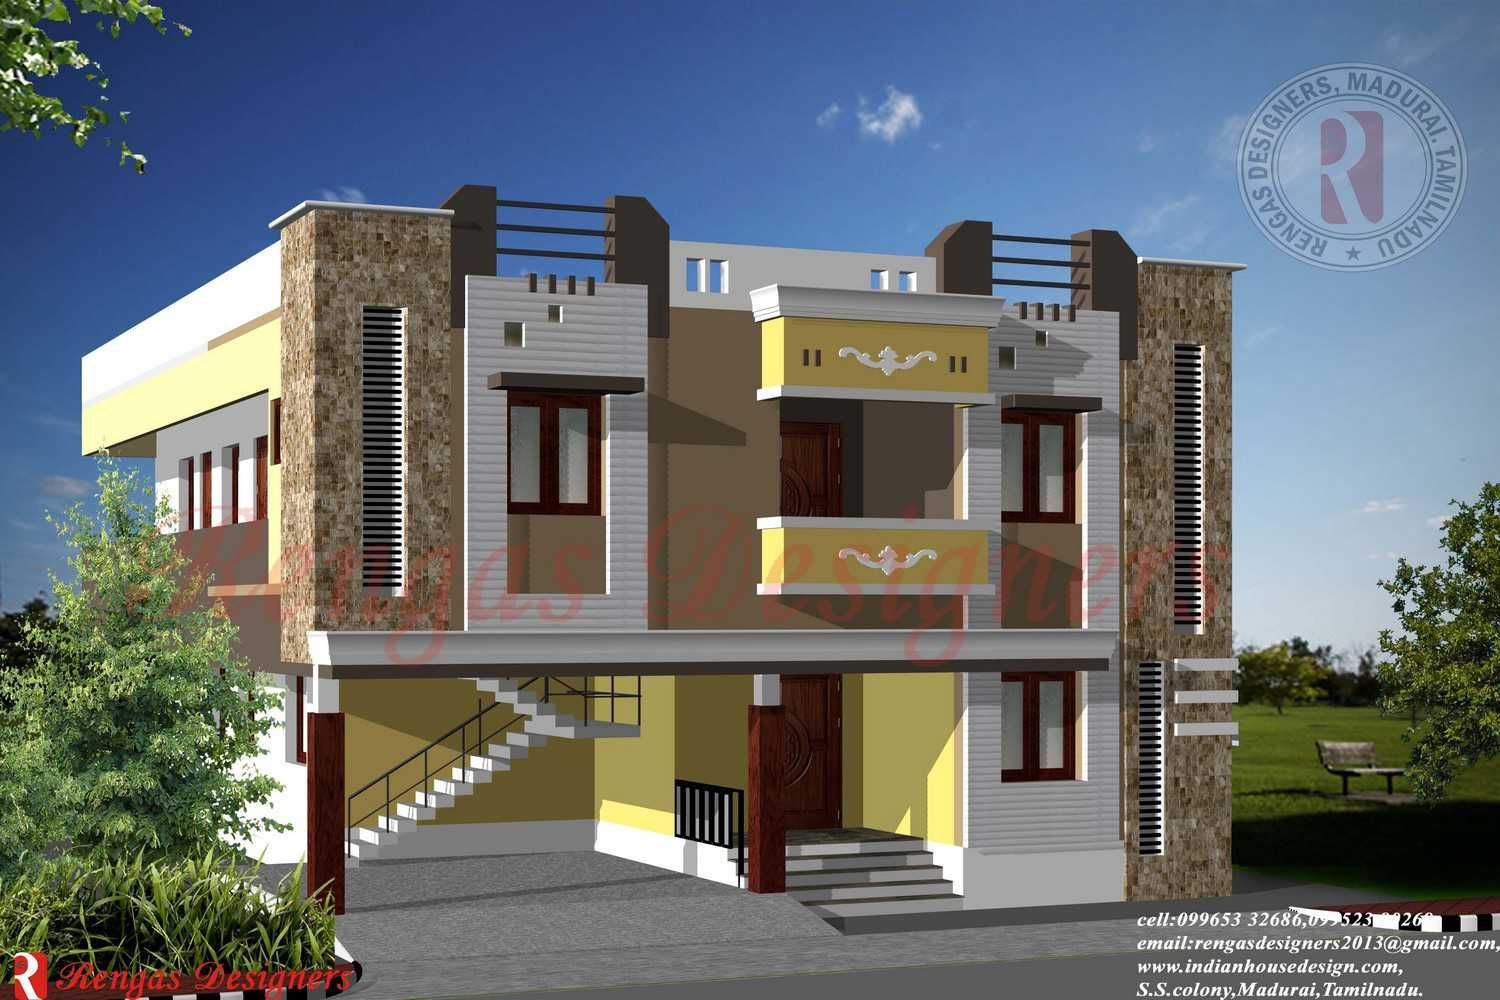 Parapet wall designs google search residence for Home front design in indian style